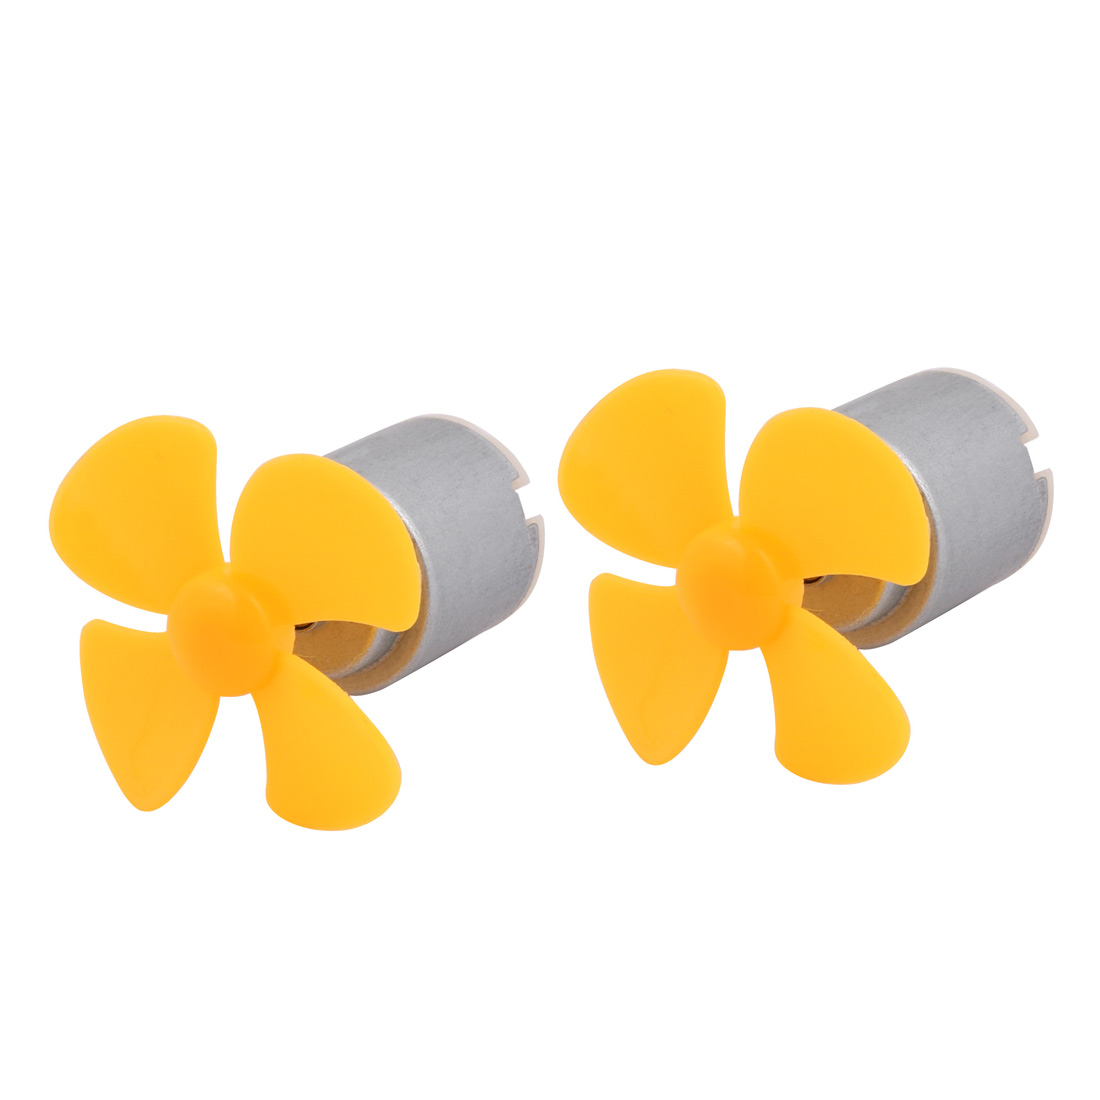 2Pcs DC 3V 17200RPM High Torque Motor 4 Vanes 40mm Dia Aircraft Propeller Yellow